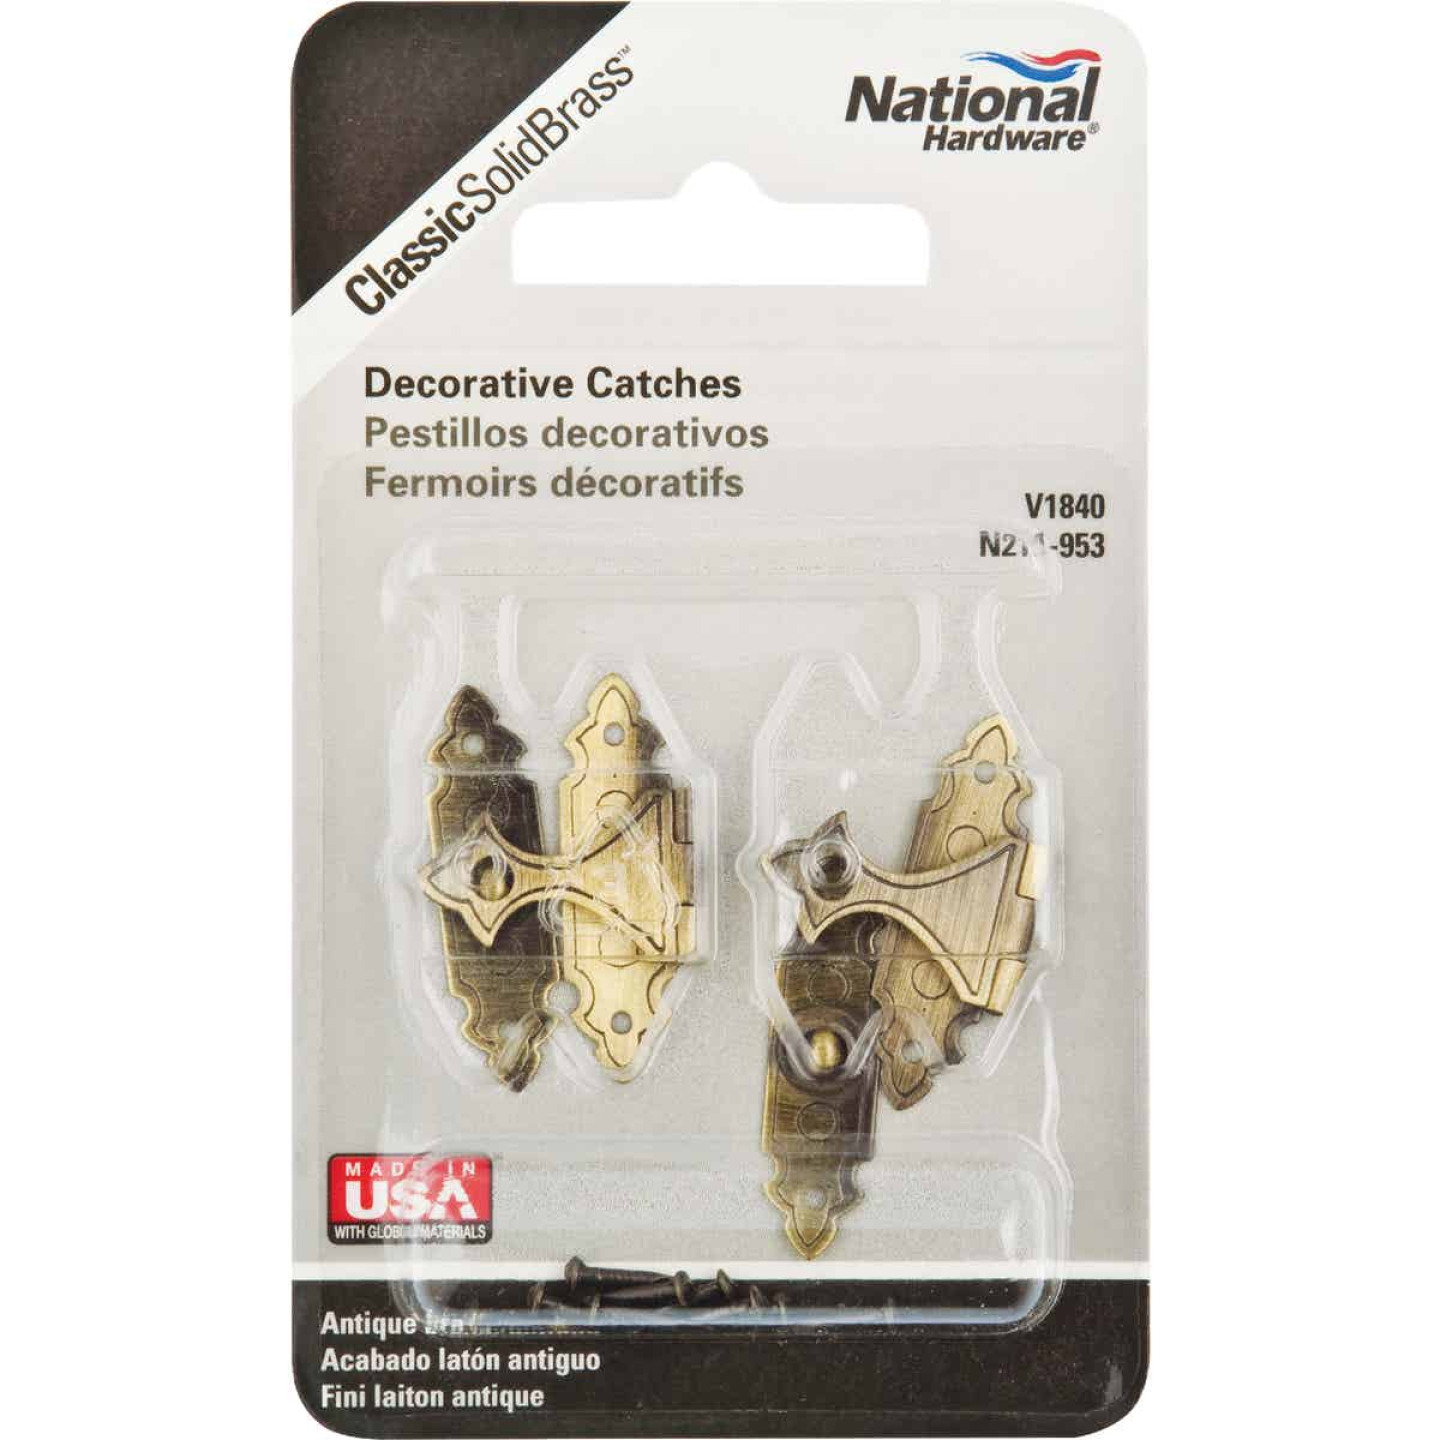 National Catalog V1840 Antique Brass Decorative Catch (2-Count) Image 2